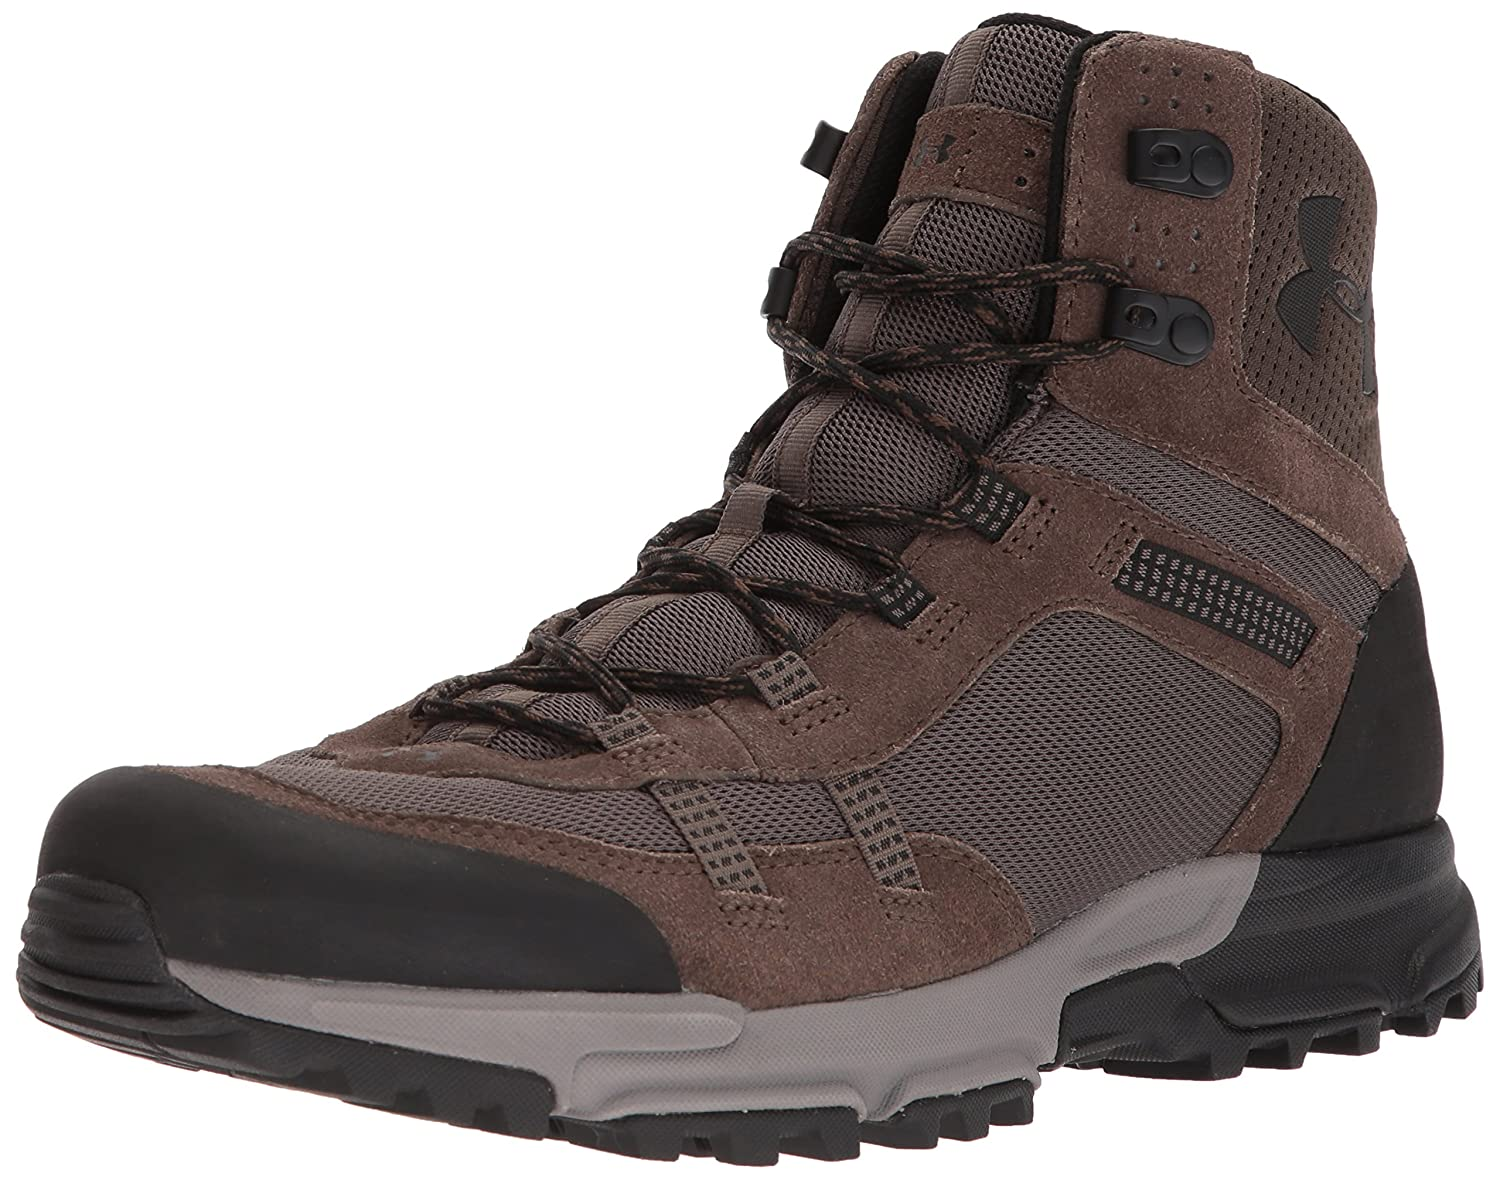 TEVA ARROWOOD LUX MID WP Brown MEN/'S TRAIL BOOTS Hiking High Top 1013643